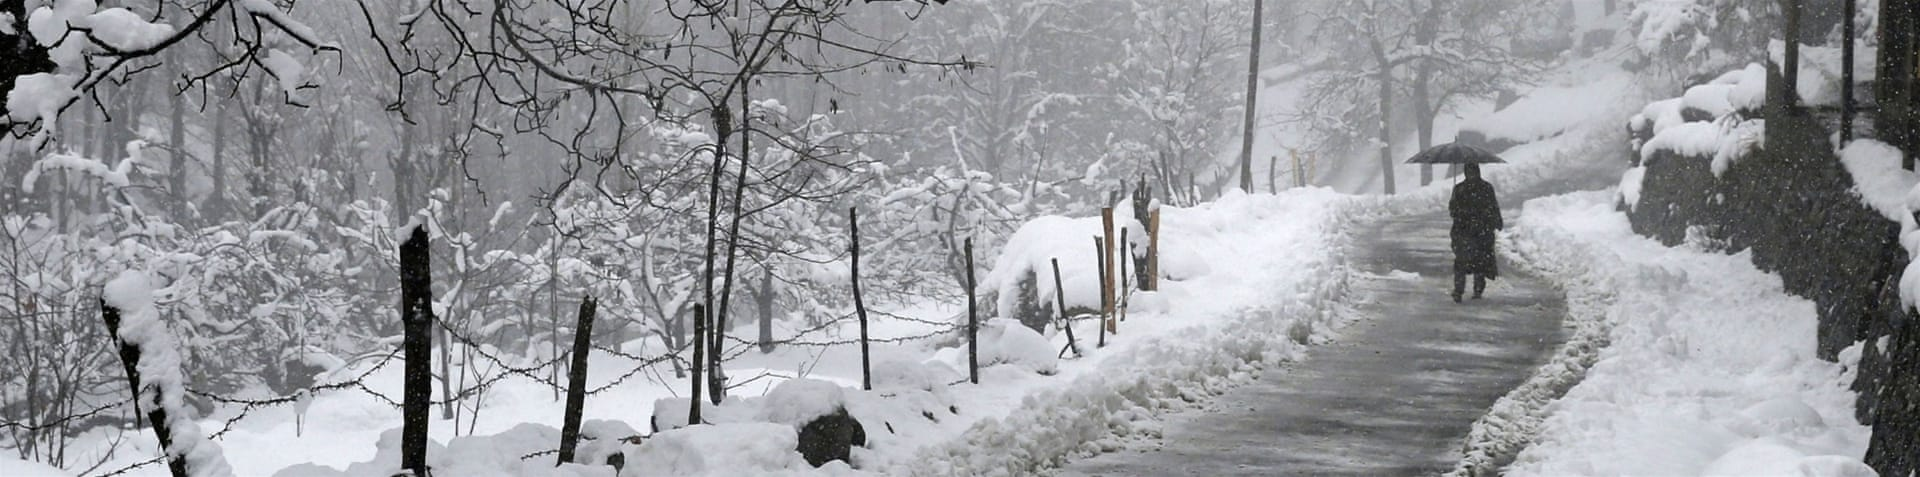 A late flurry of fresh snow covered the outskirts of Srinagar, the summer capital of Indian-administered Kashmir [EPA]